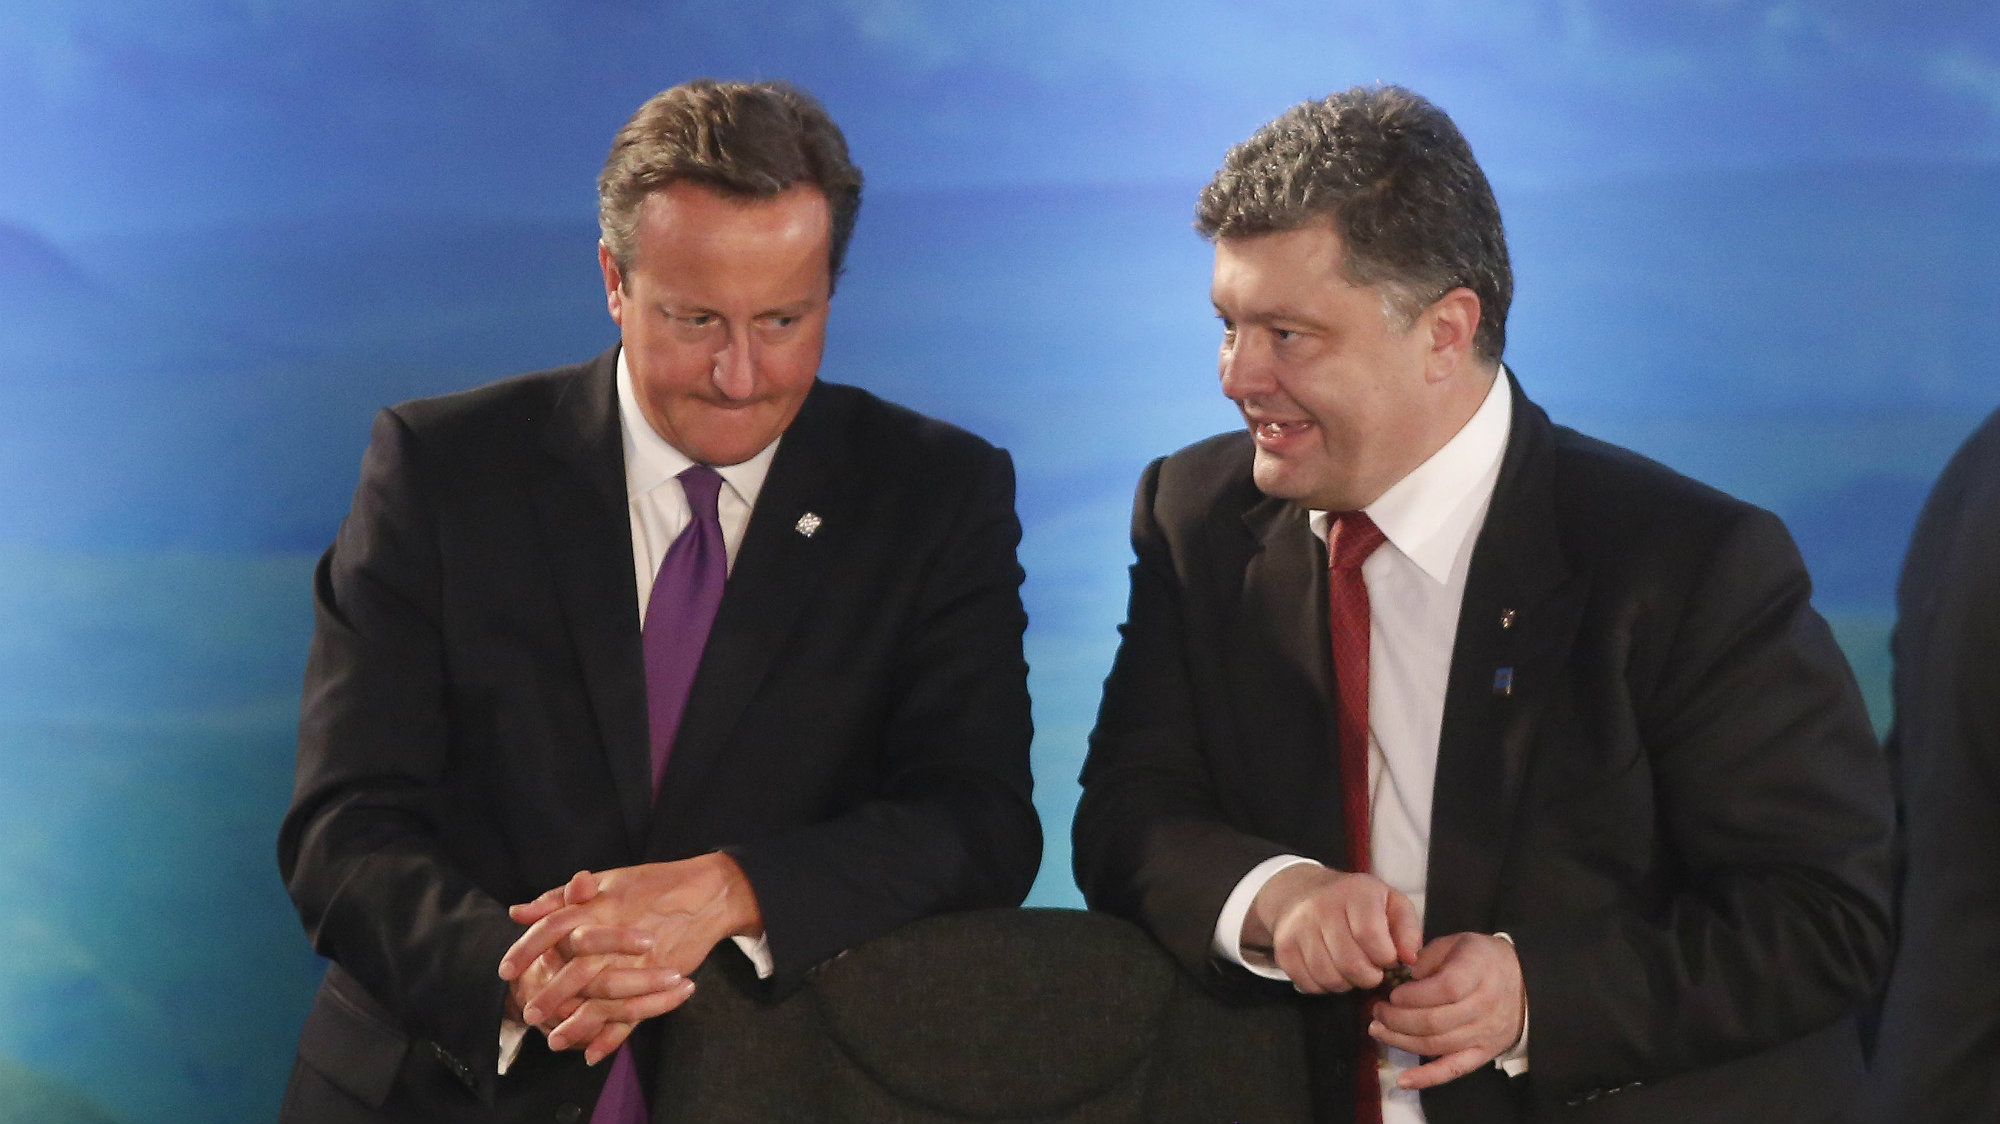 2014Britain's Prime Minister David Cameron talks with Ukraine's President Petro Poroshenko during the NATO Summit at the Celtic Manor Resort in Newport, Wales, September 4, 2014.